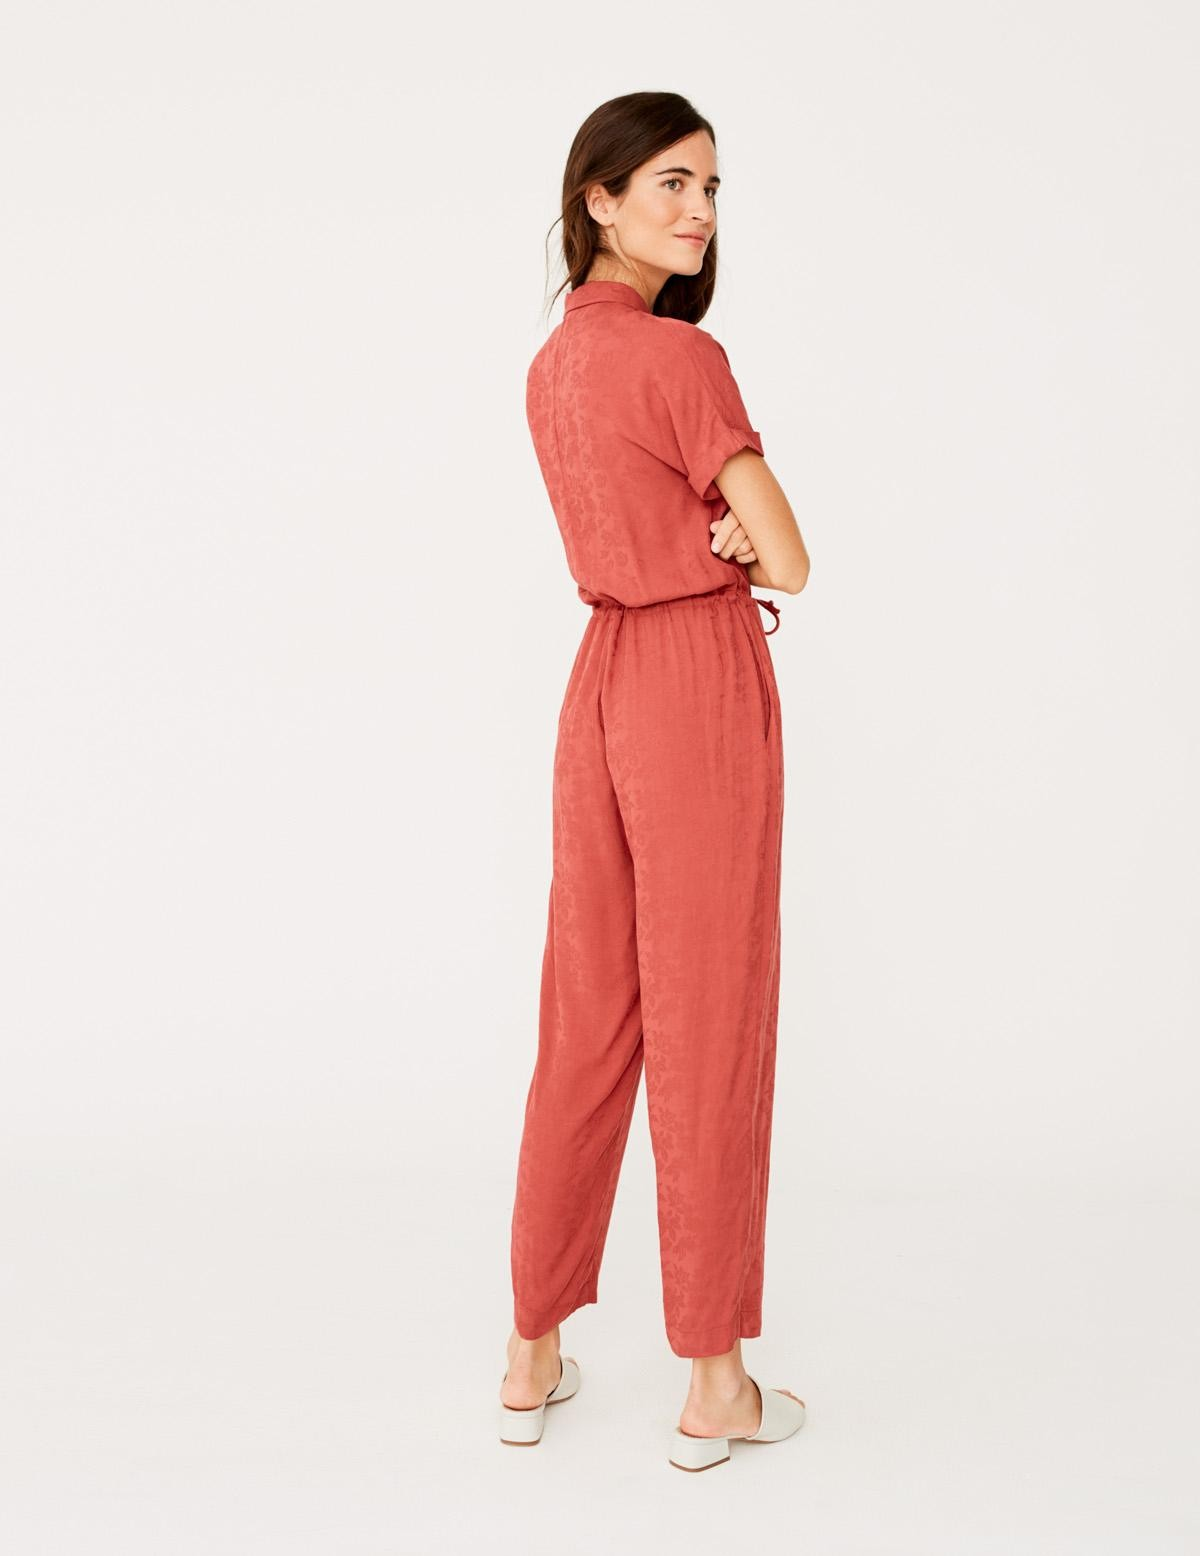 Flowing shirt-style jumpsuit - Item1